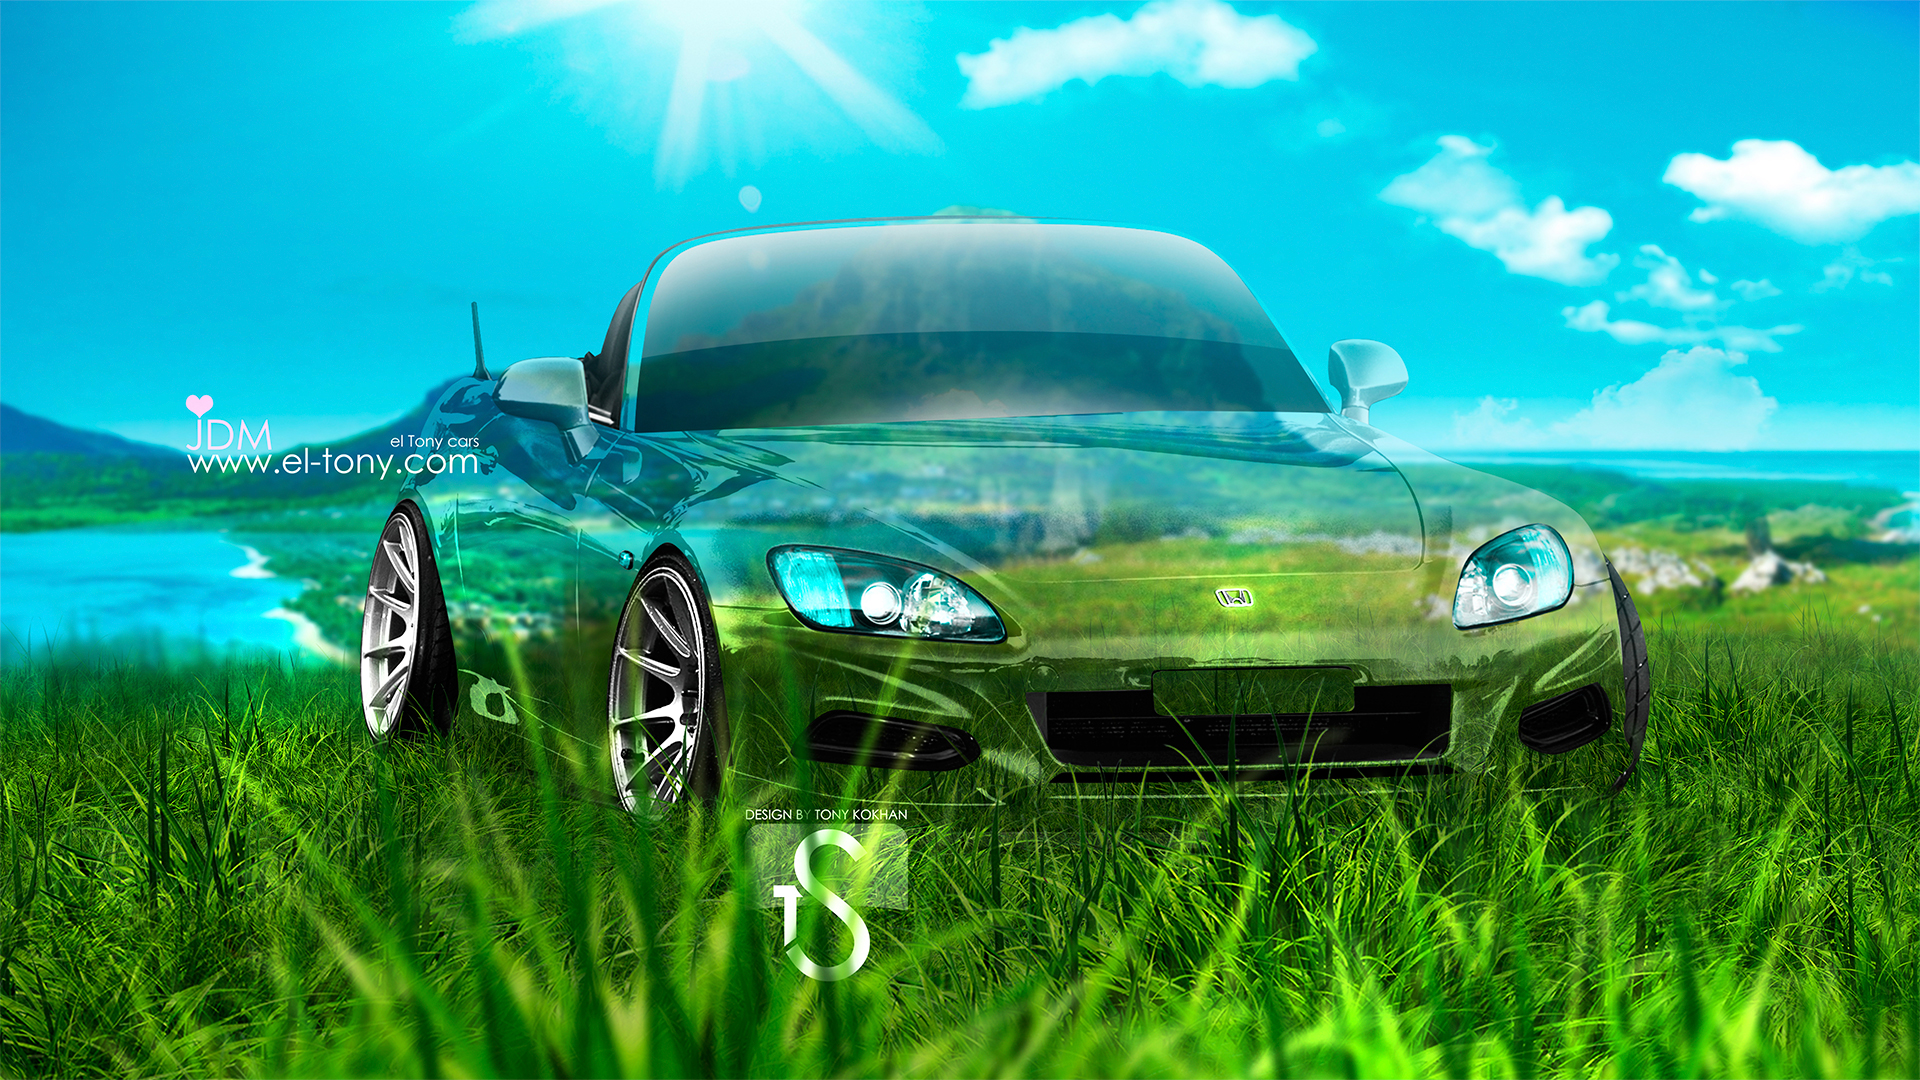 Attrayant Honda S2000 JDM Crystal Nature Car 2013 HD